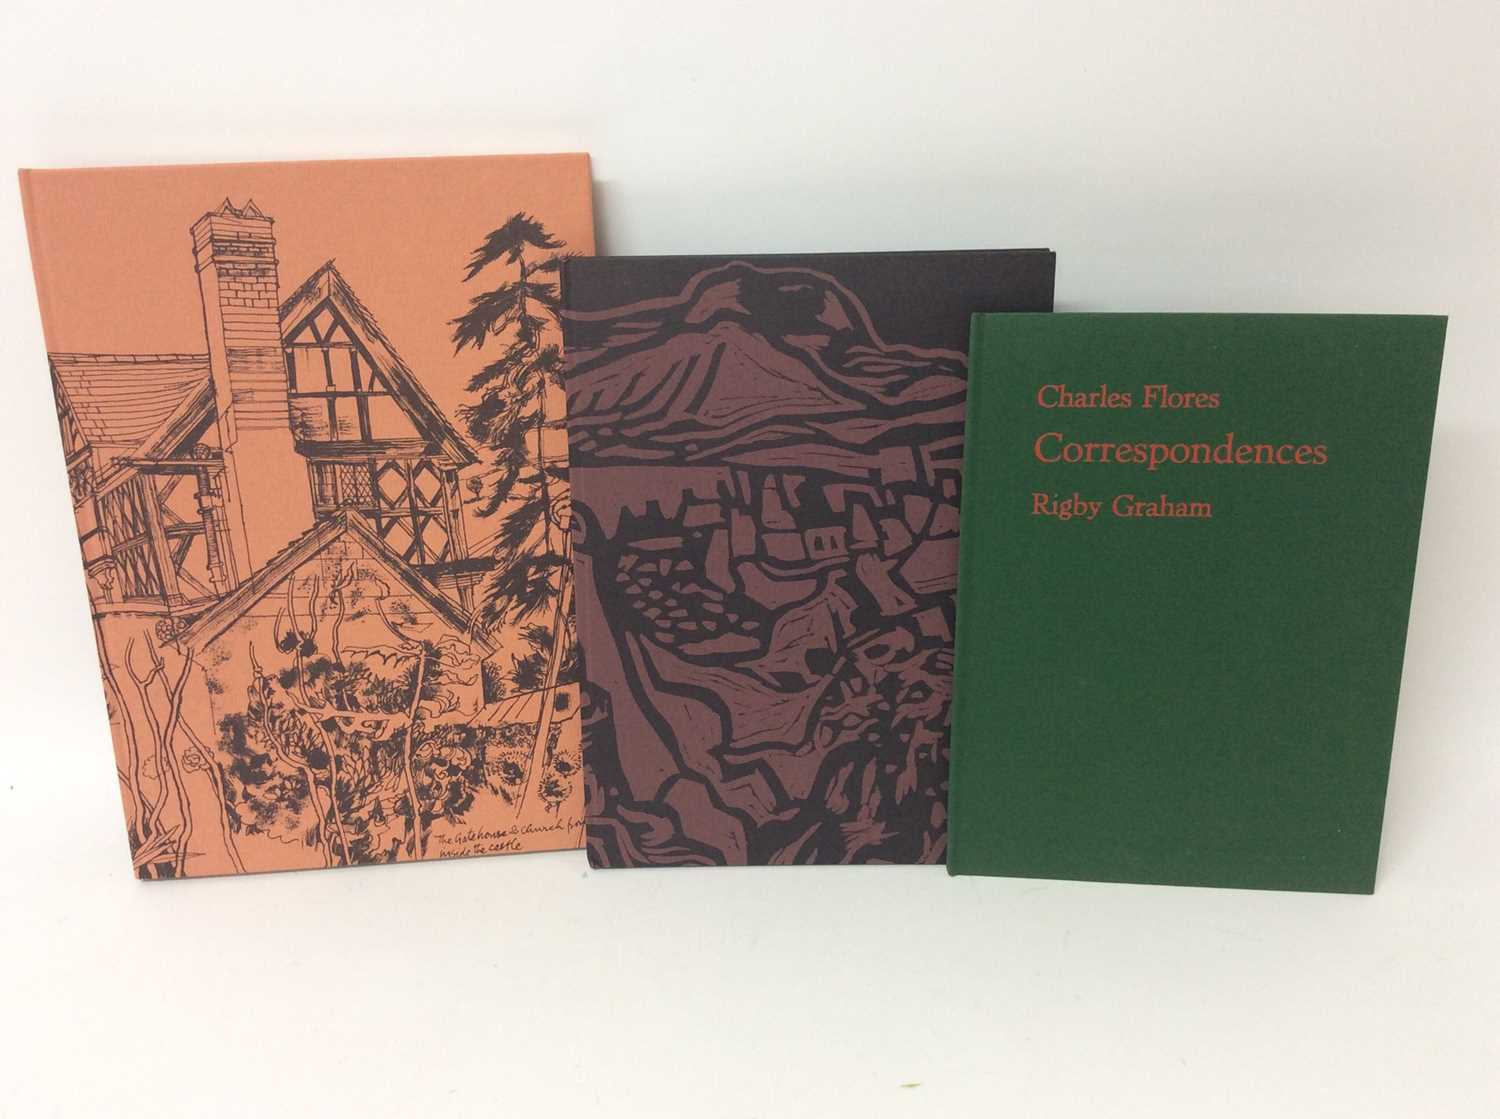 Rigby Graham, three limited edition publications